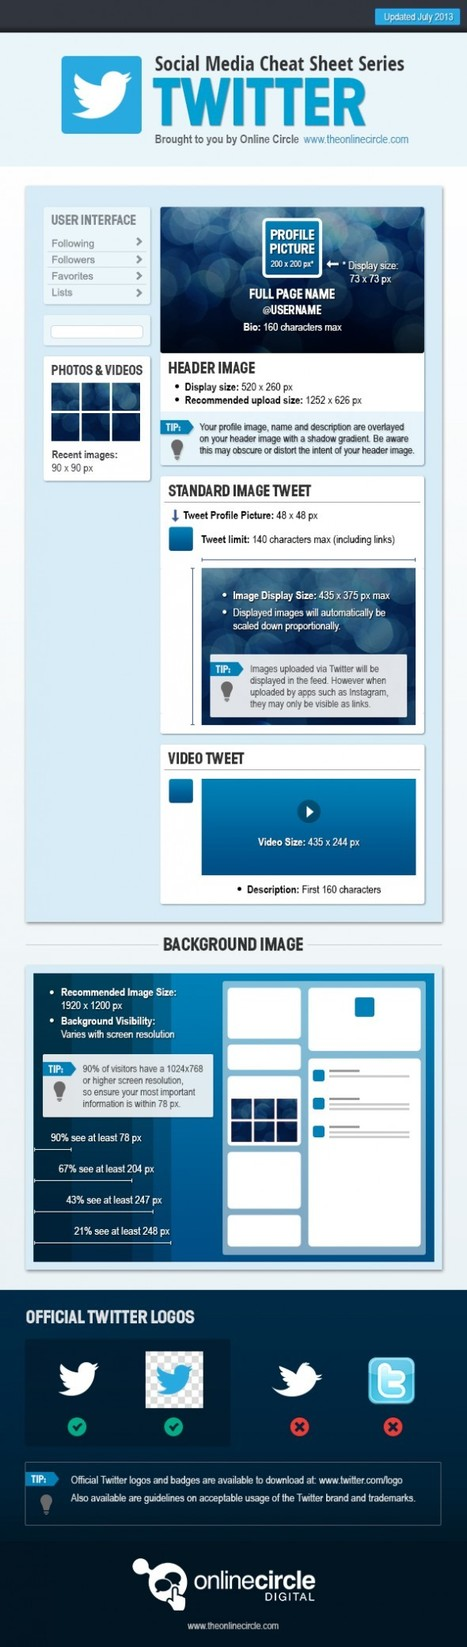 Infographic: Twitter Sizes and Dimensions Cheat Sheet 2013 | Digital Brand Marketing | Scoop.it